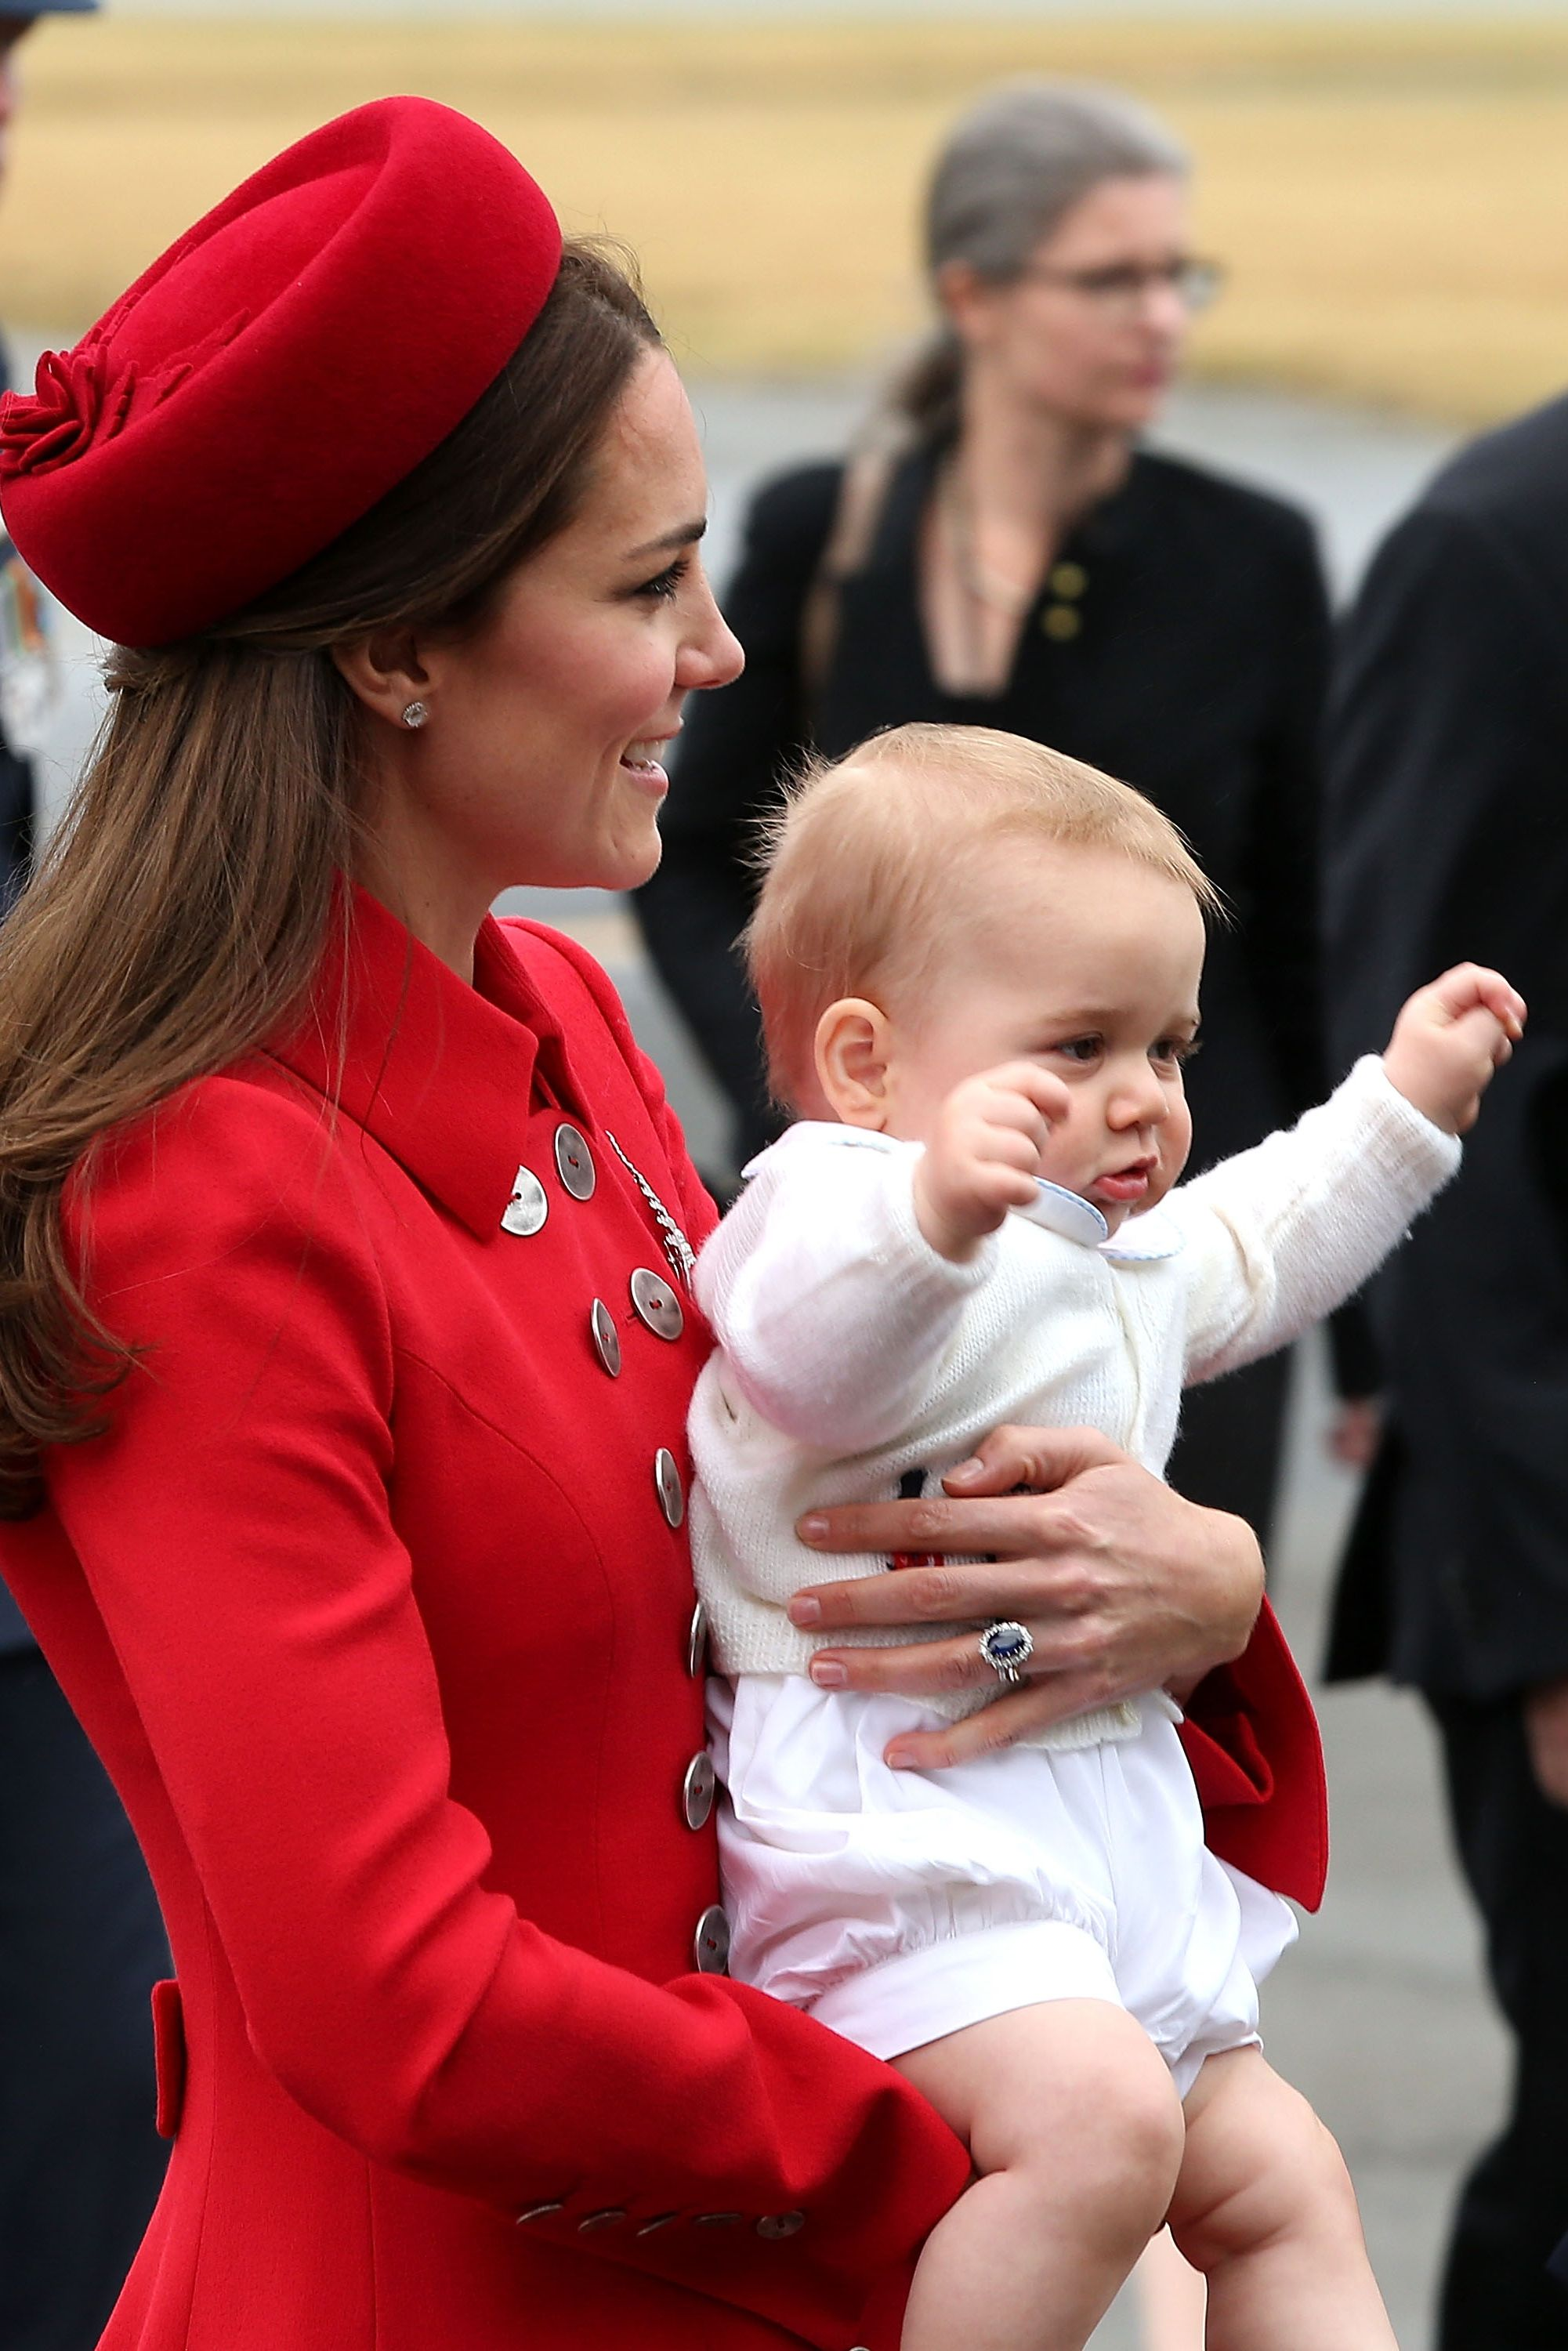 The Duke And Duchess Of Cambridge Tour Australia And New Zealand - Day 1